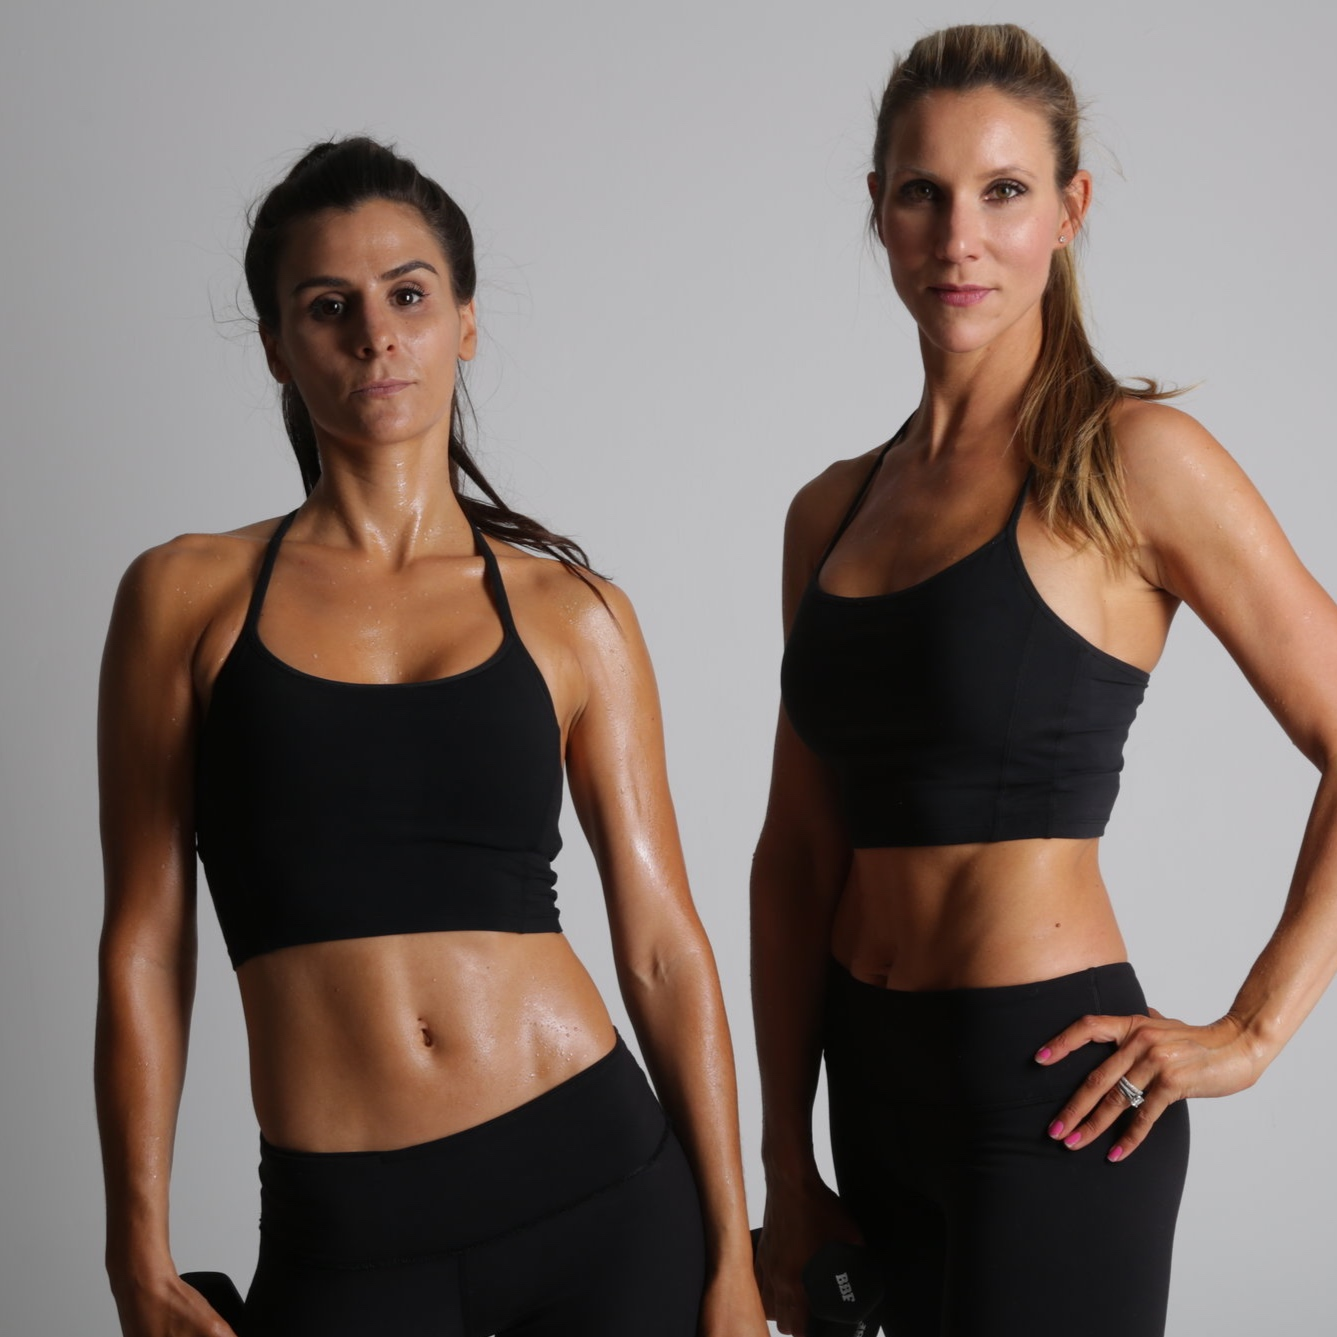 The Barre Code co-founders Ariana Chernin and Jillian Lorenz will deliver comprehensive programs centered around cardio, strength and restoration.